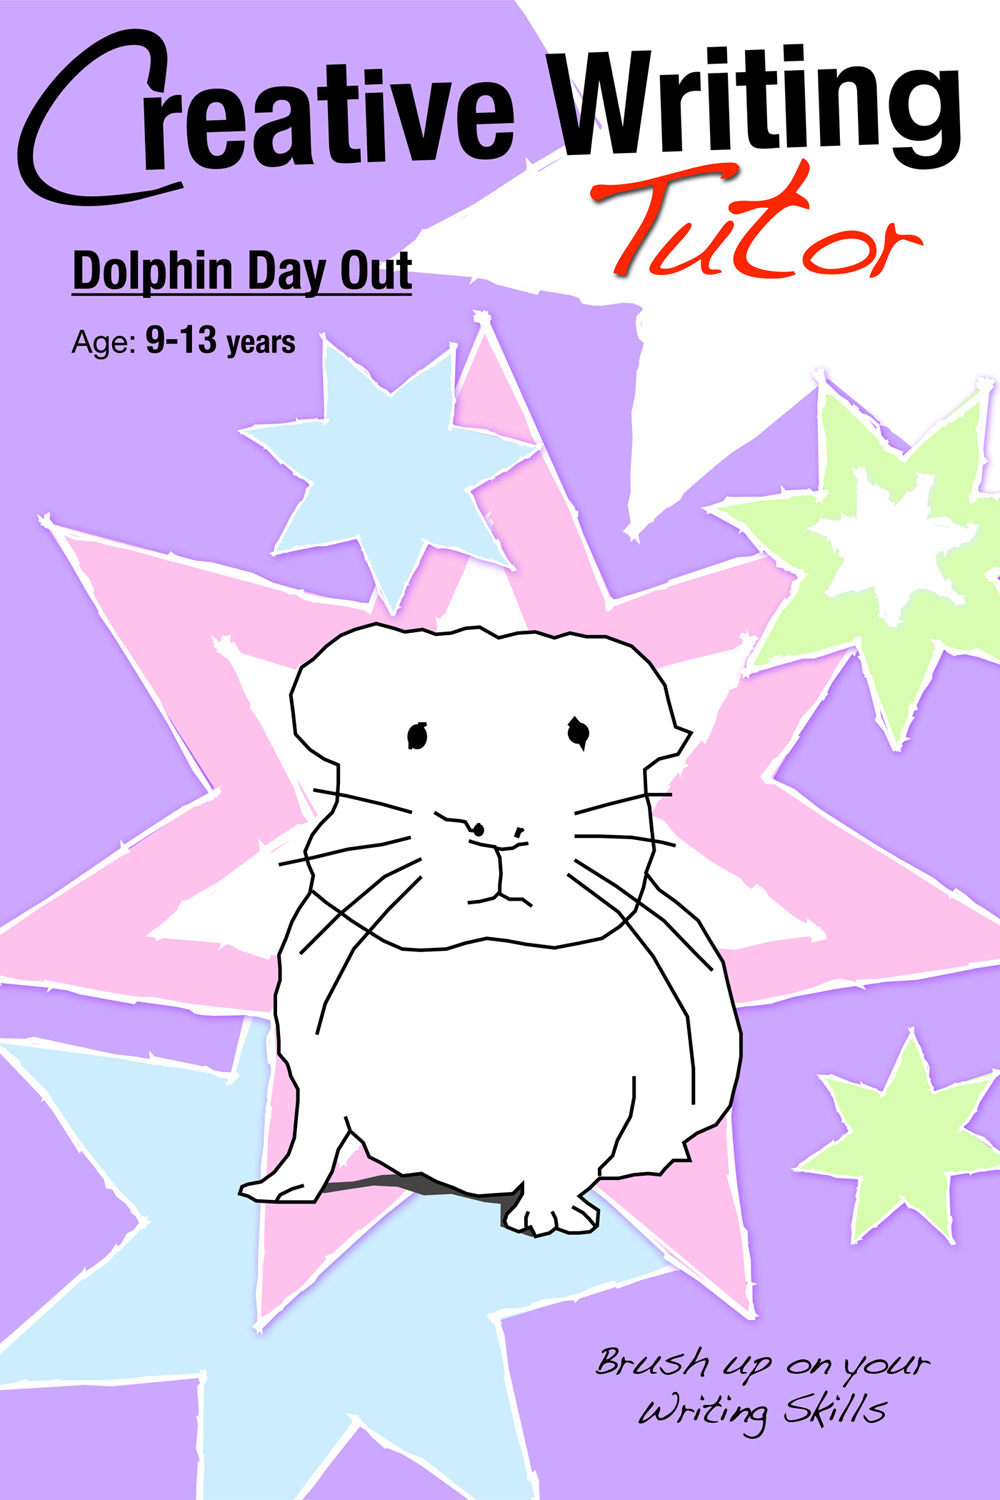 Dolphin Day Out